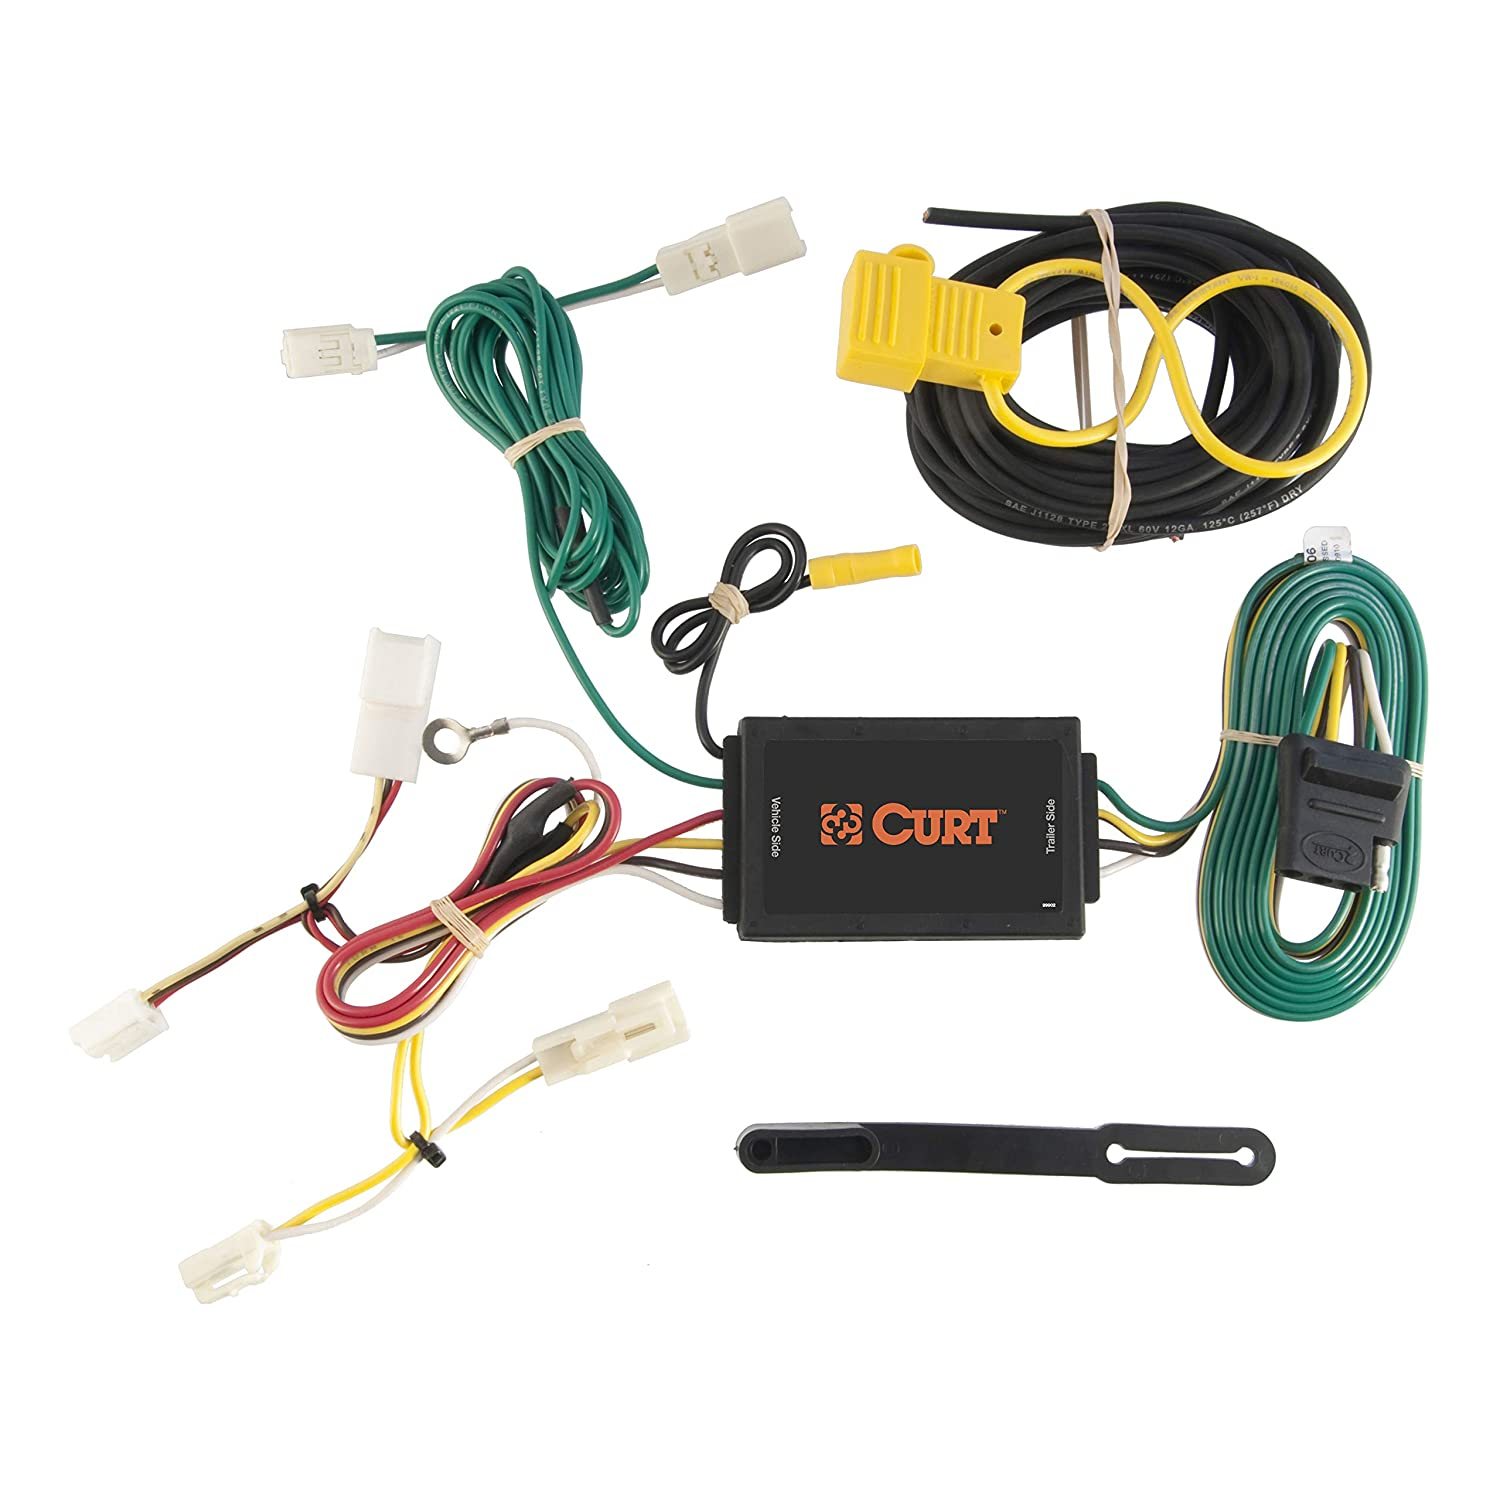 curt 56106 vehicle side custom 4 pin trailer wiring harness for select toyota sienna Vehicle Specific Trailer Wiring Harness